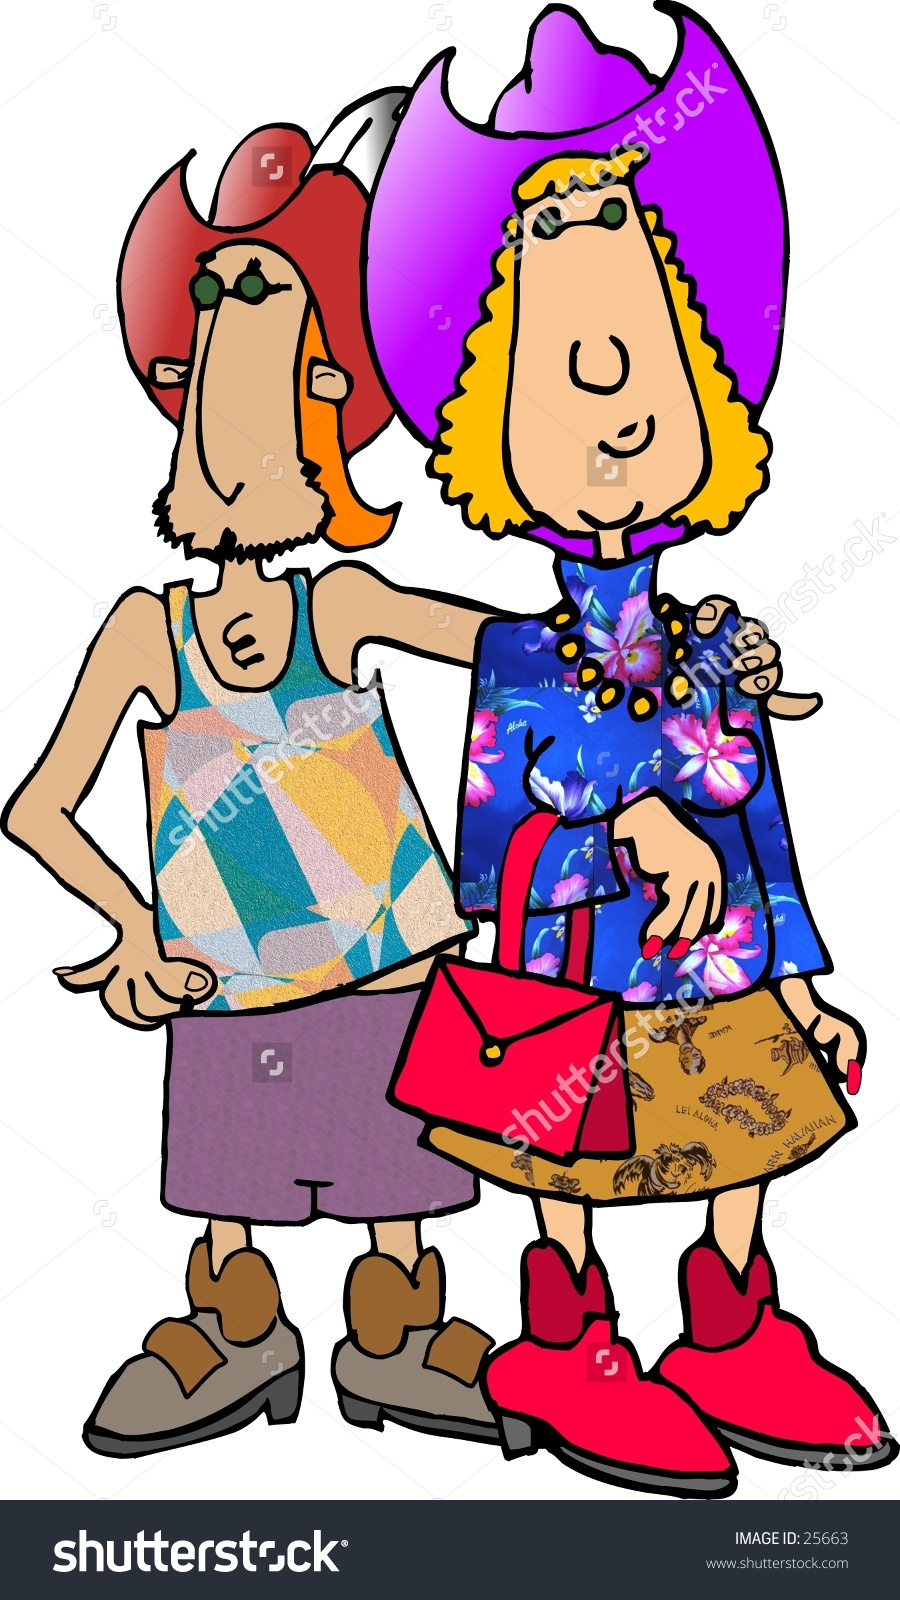 Clipart Illustration Of A Man And Woman In Strange Outfits.